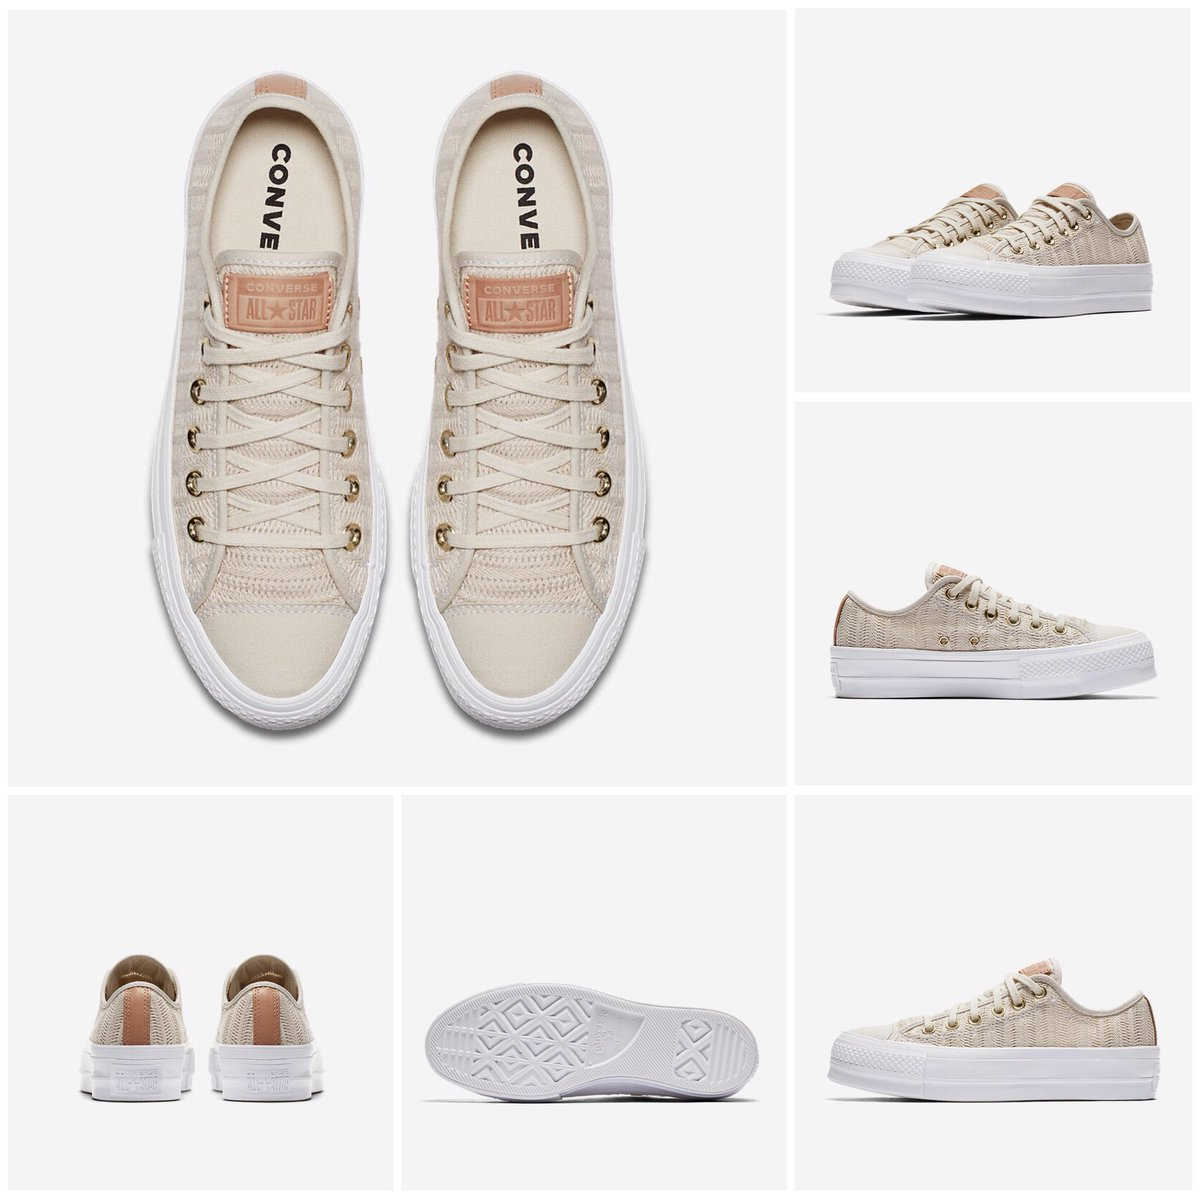 ... TAYLOR ALL STAR LIFT HERRINGBONE MESH LOW TOP Women s Shoe  44.97 👈 👀  Sizes 5-11 Double-stacked rubber sole for added height. Lightweight c361dcbca